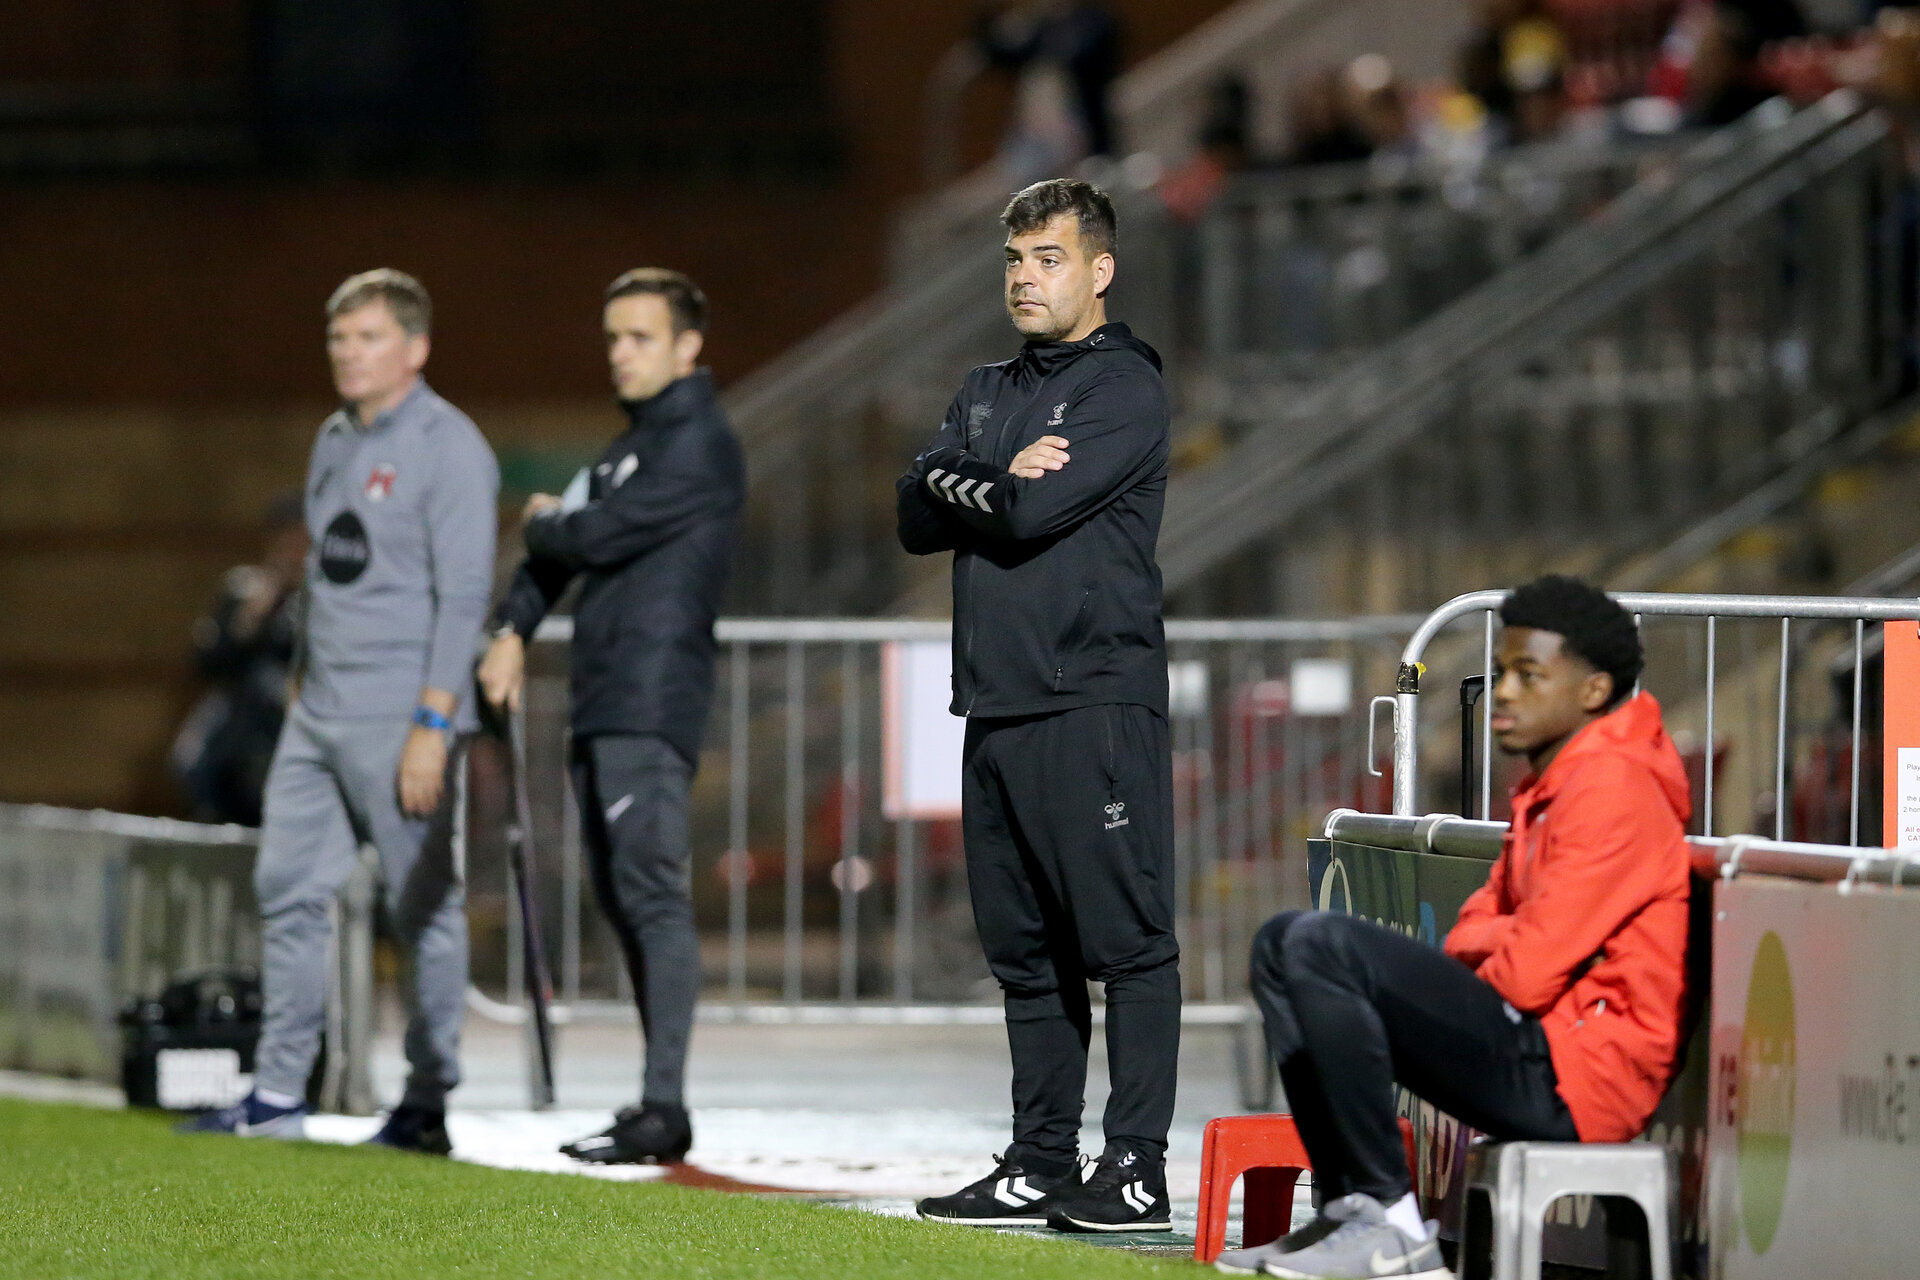 LONDON, ENGLAND - SEPTEMBER 14: Dave Horseman Southampton B team coach during the Papa John's Trophy match between Leyton Orient and Southampton B Team at Breyer Group Stadium on September 14, 2021 in London, England. (Photo by Isabelle Field/Southampton FC via Getty Images)